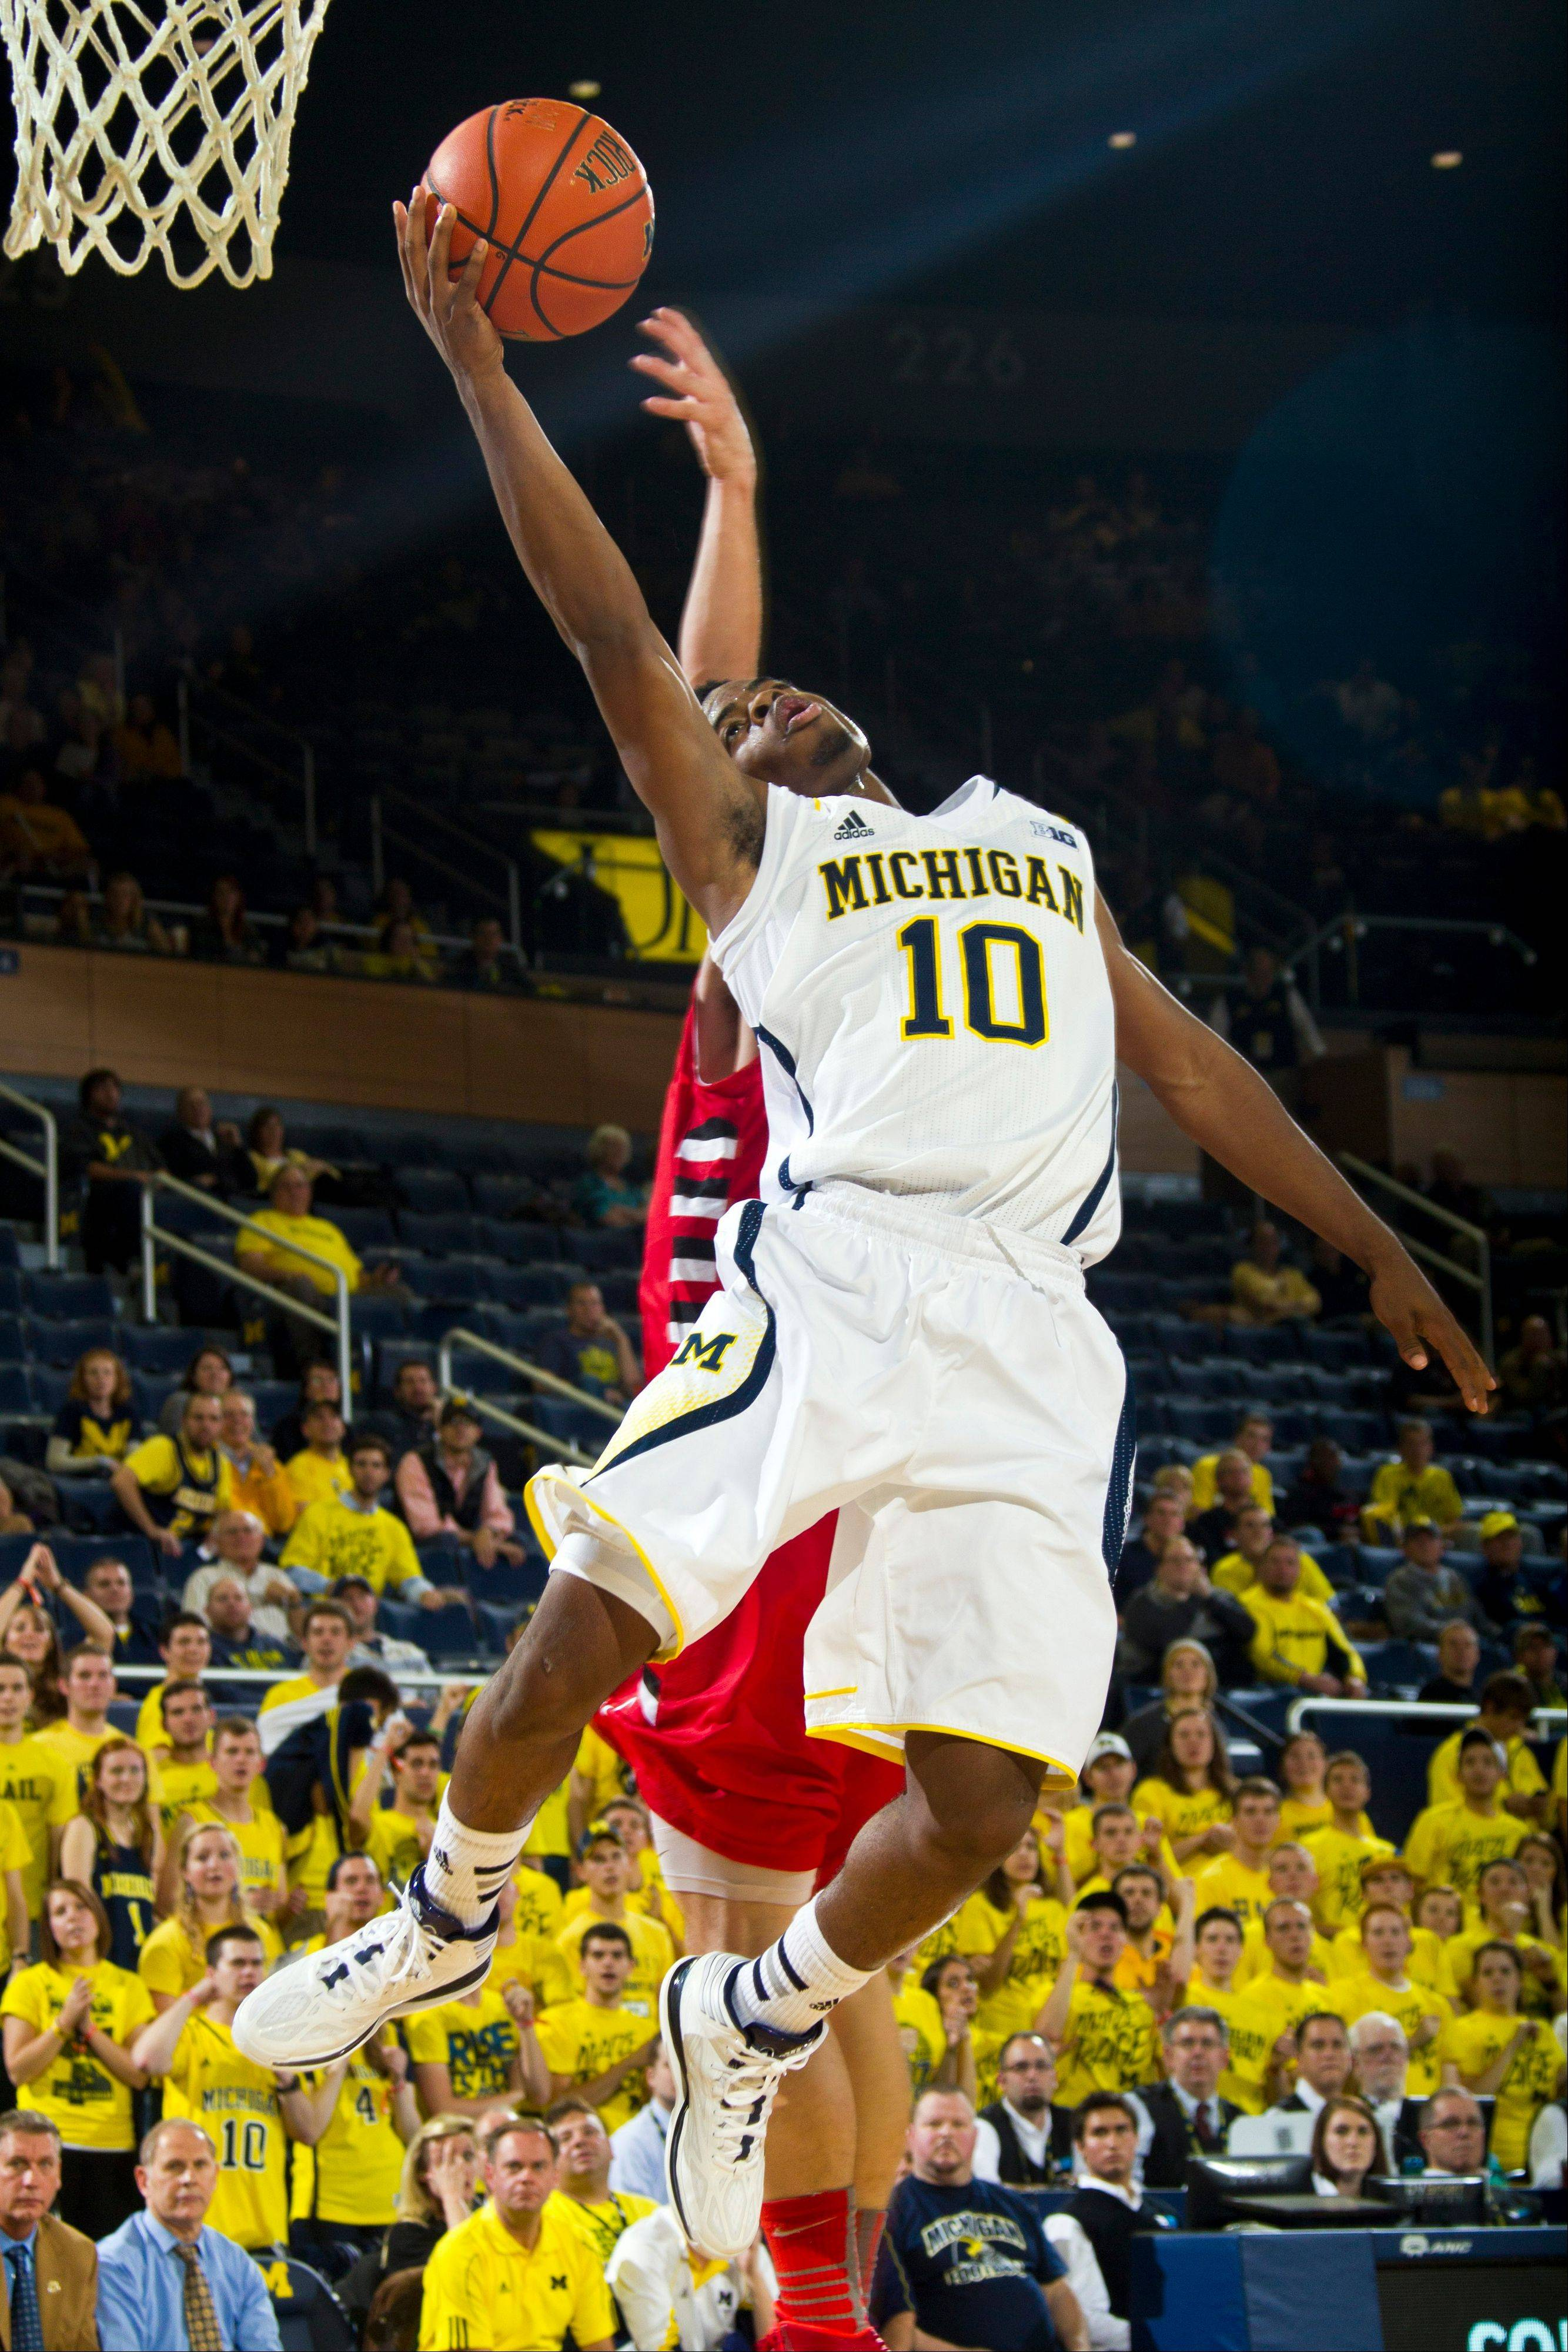 Michigan guard Derrick Walton Jr. makes a layup in the second half of an exhibition game Tuesday against Concordia at Crisler Center in Ann Arbor, Mich. Michigan won 117-44.